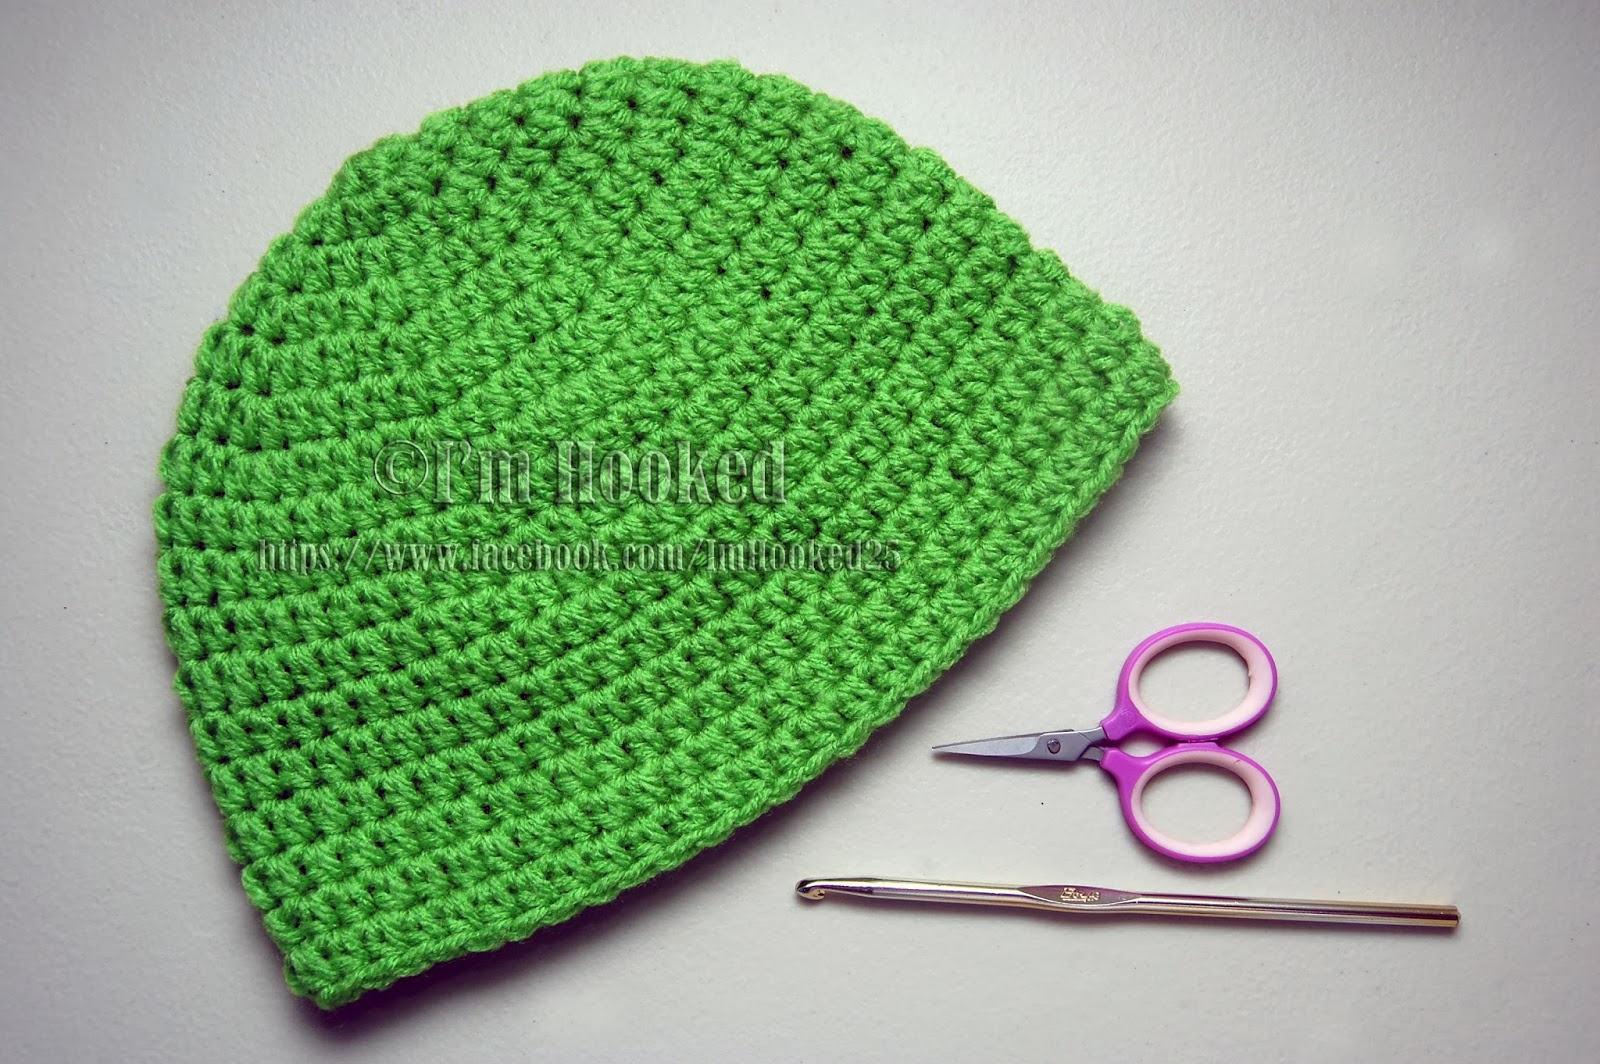 Crochet Basic Beanie Hat Pattern : Crochet Treasures: Basic Beanie (Half Double Crochet)